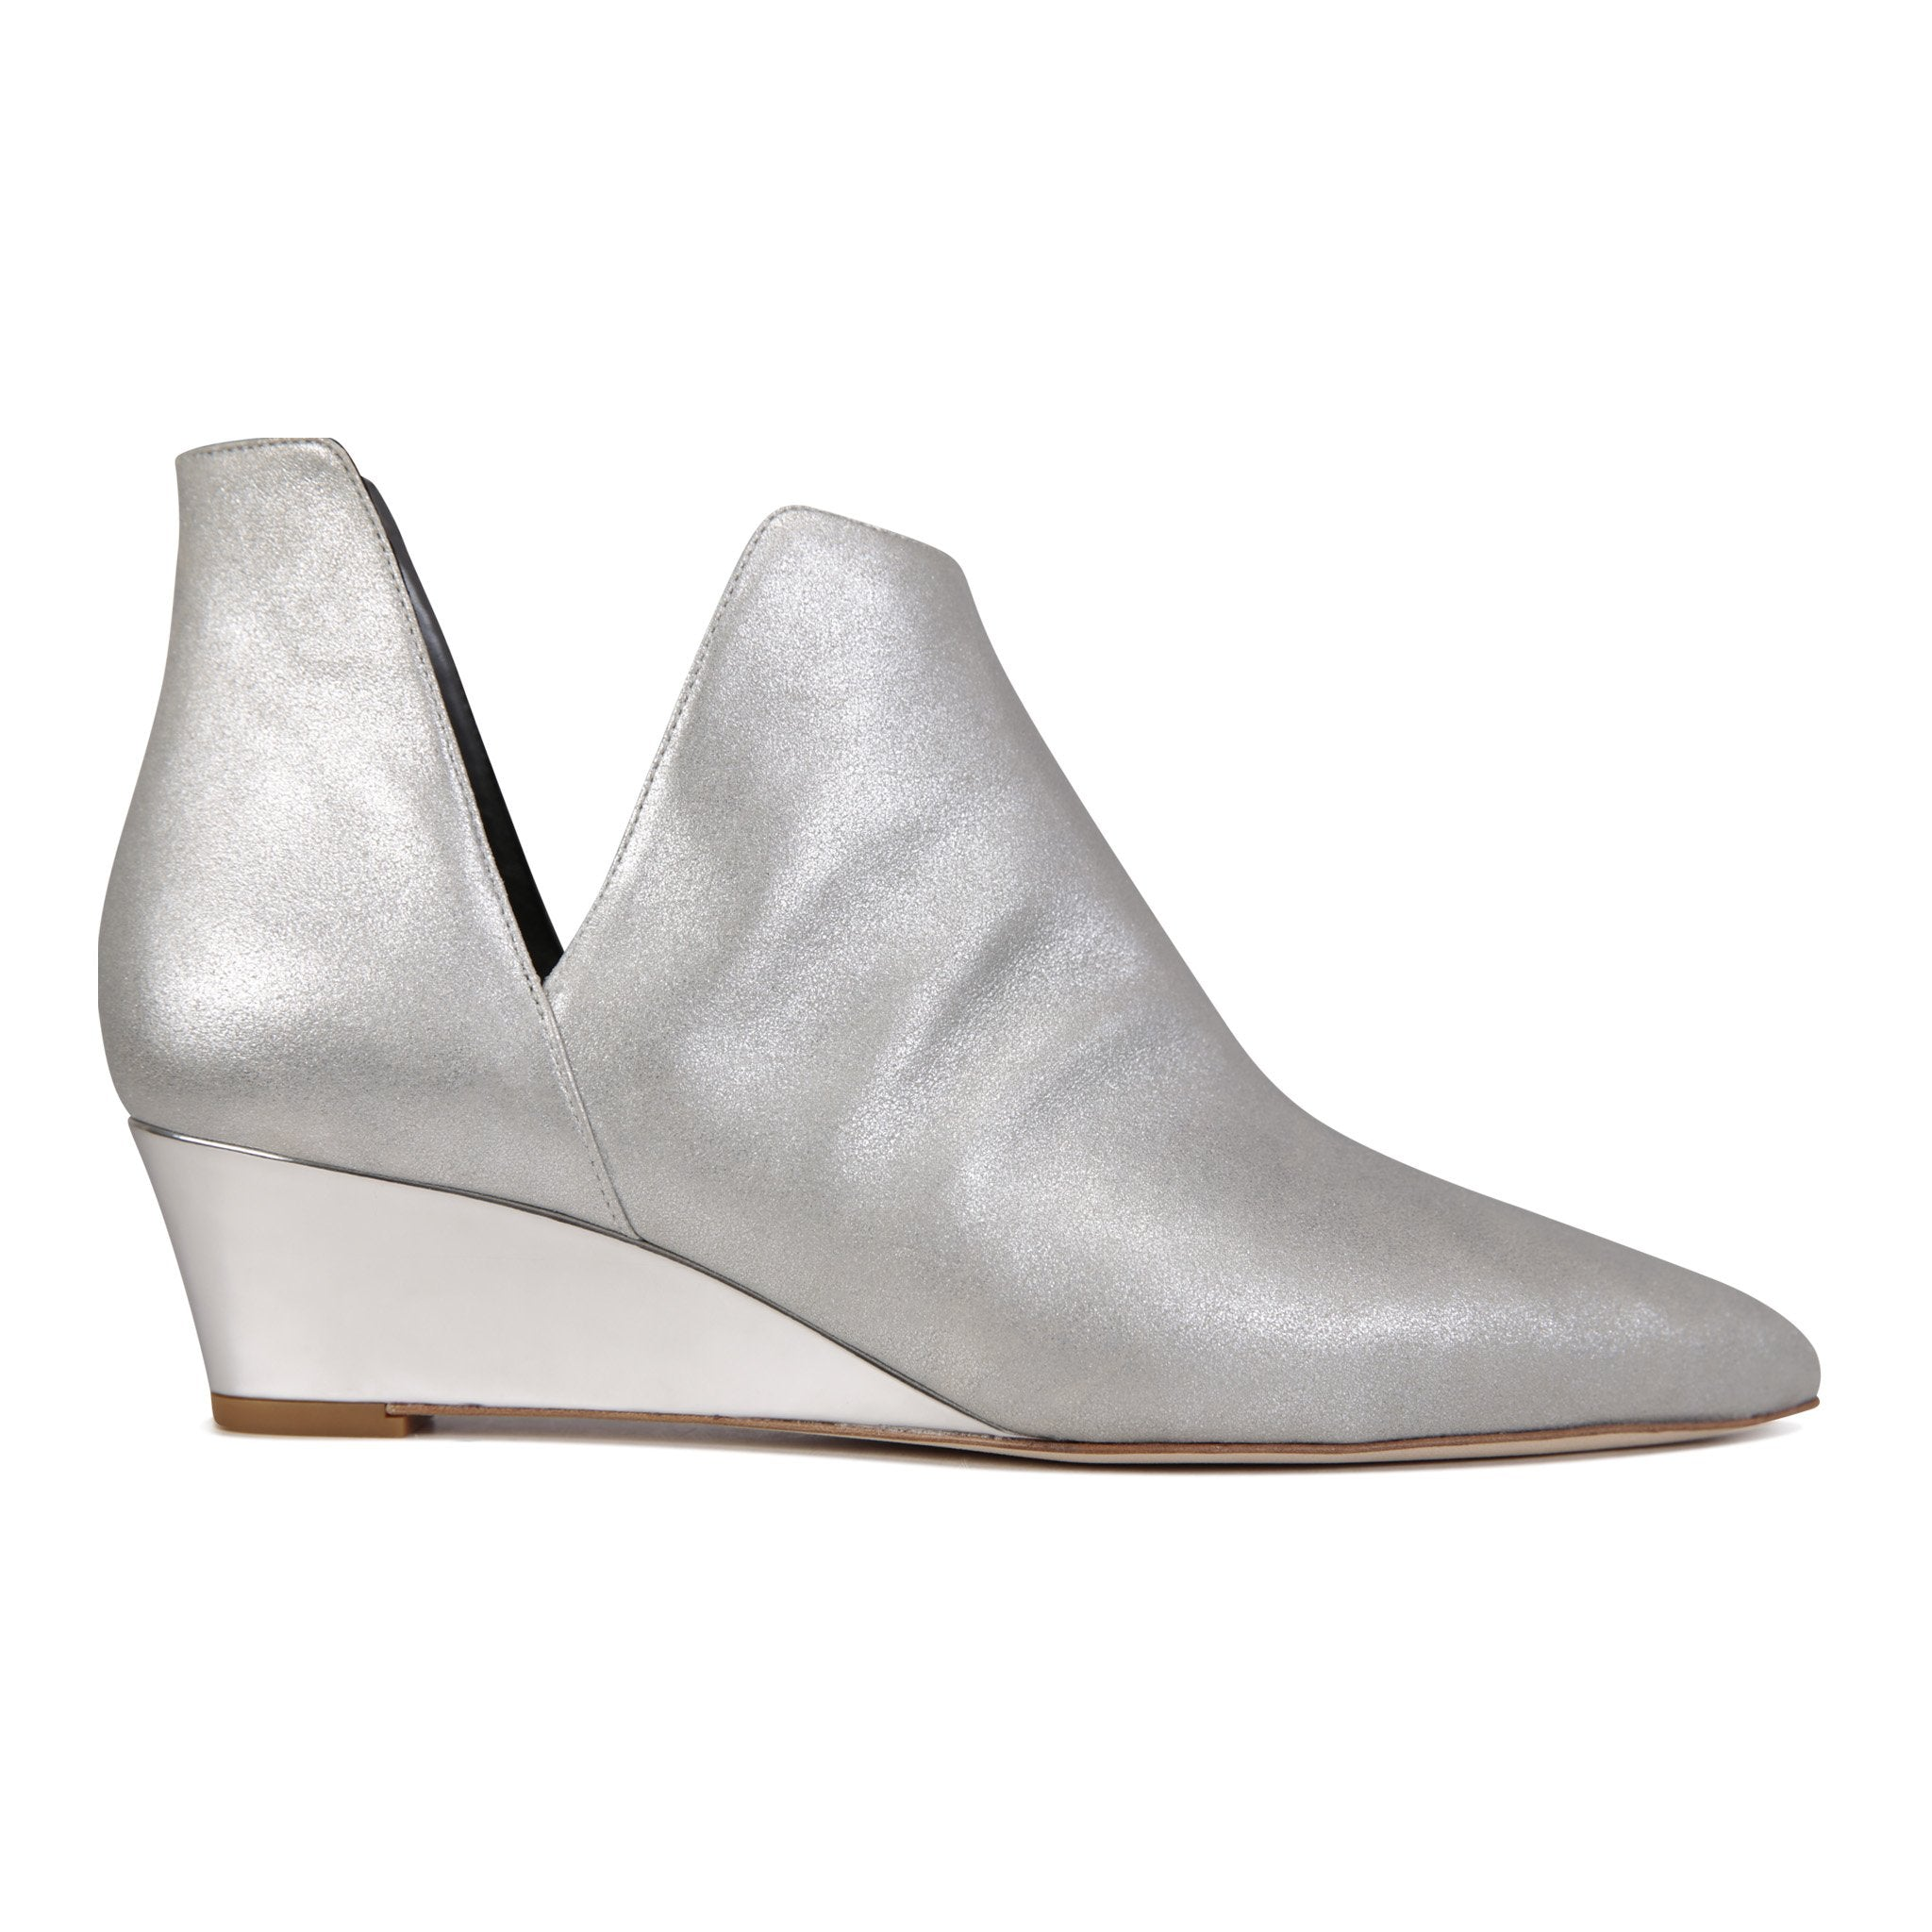 SYRENE - Burma + Metallic Argento, VIAJIYU - Women's Hand Made Sustainable Luxury Shoes. Made in Italy. Made to Order.